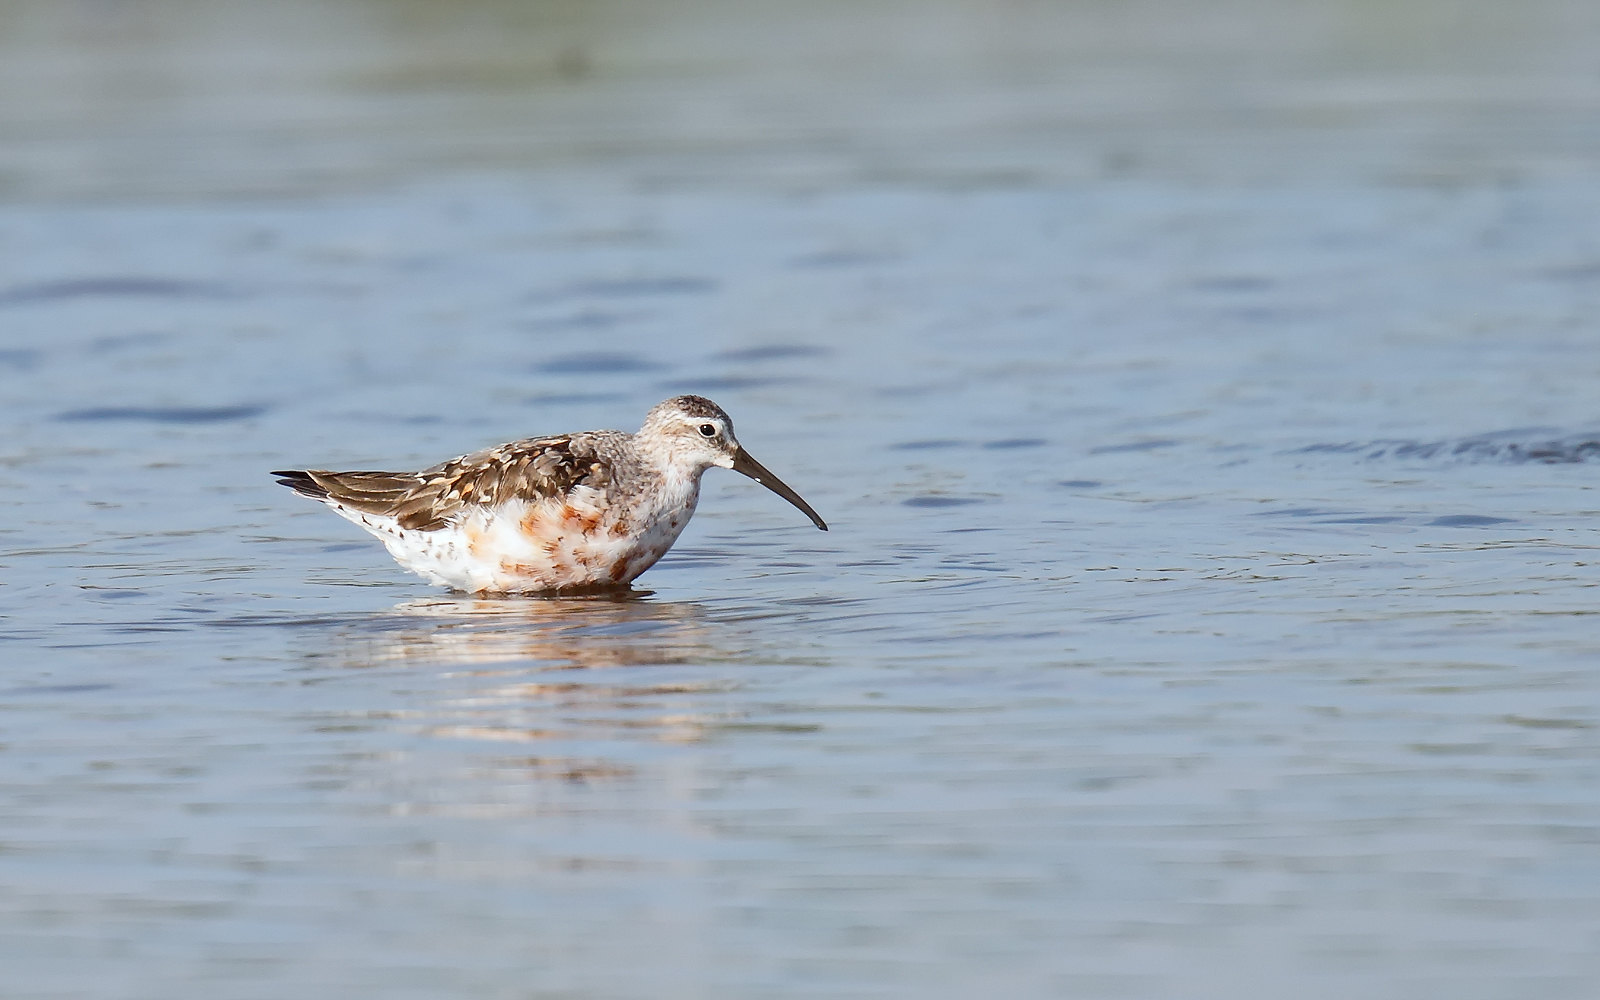 Curlew Sandpiper - moulting adult